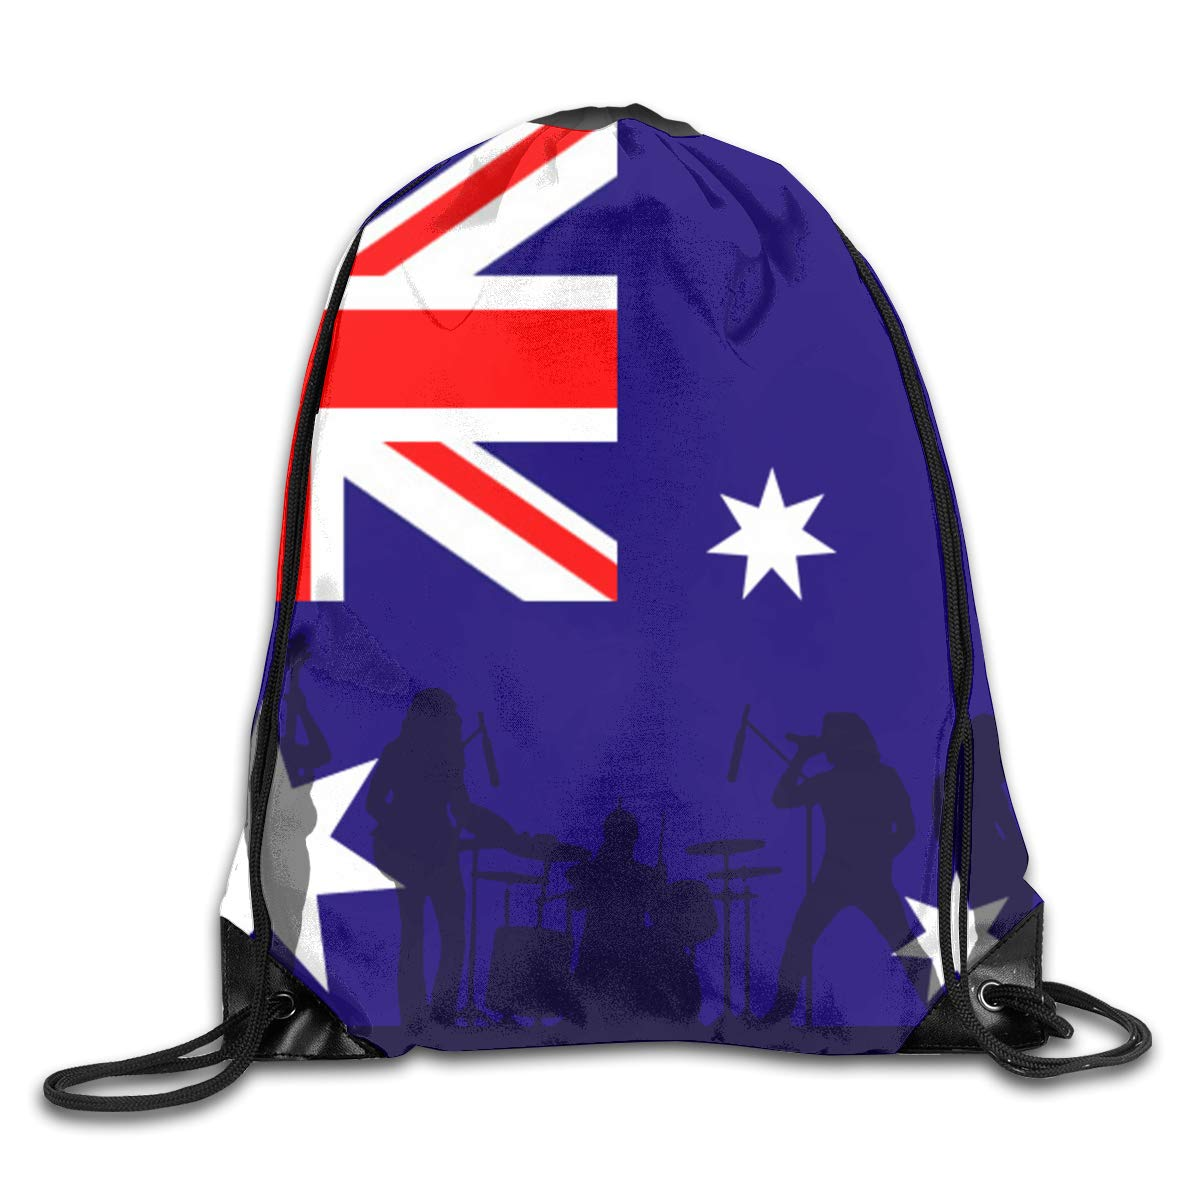 Australian Flag Beam Mouth Backpack Pull Rope Shoulder Bag Outdoor Sports Leisure Bag